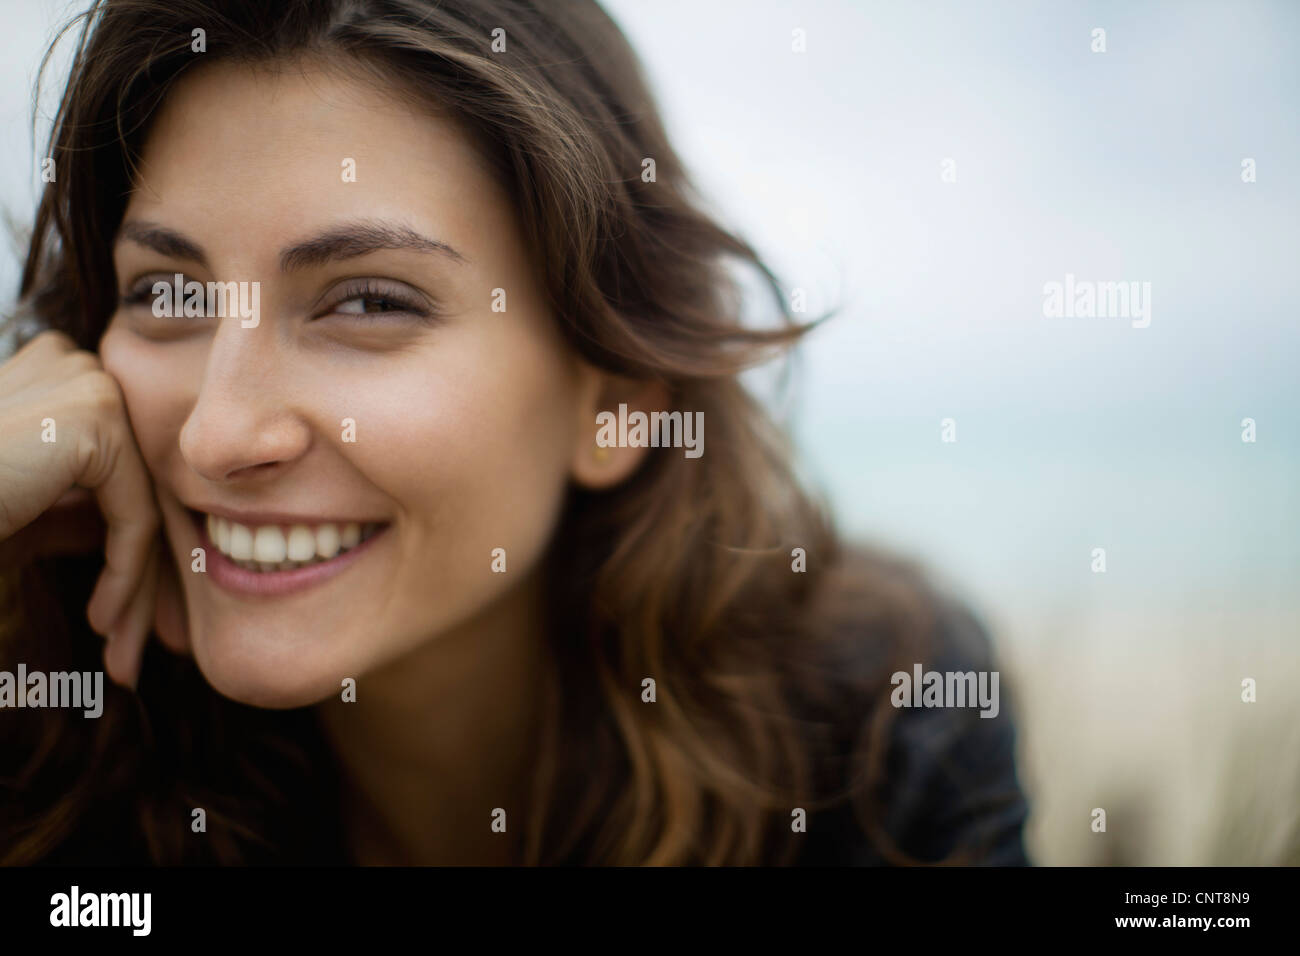 Smiling young woman - Stock Image